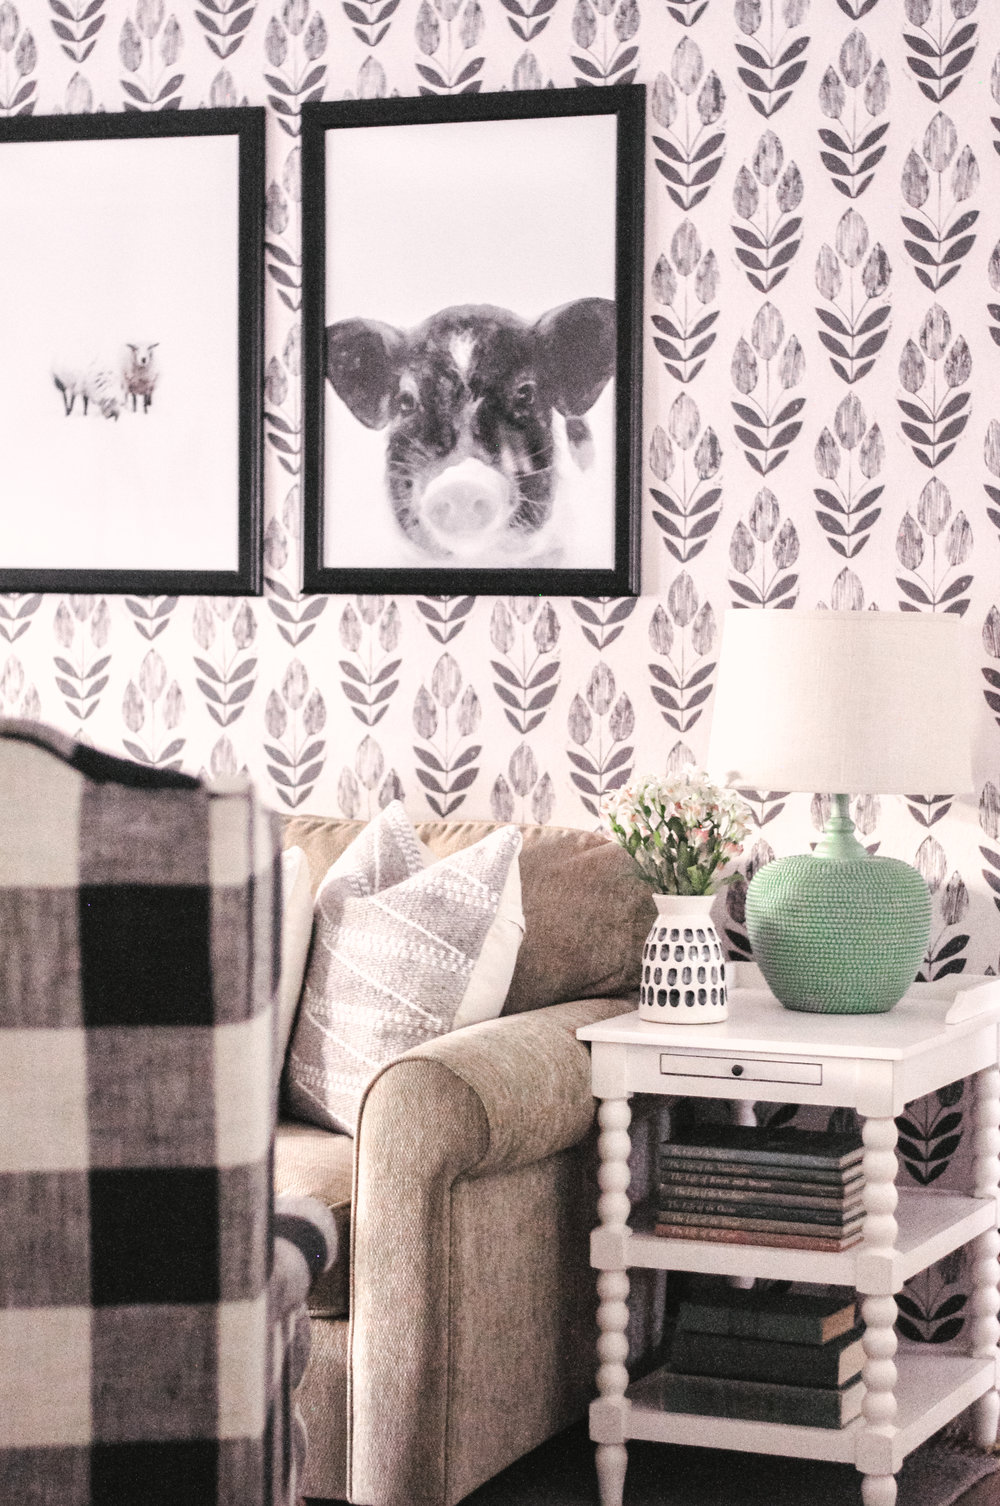 Scandinavian Block Print Tulip Wallpaper in Black and White